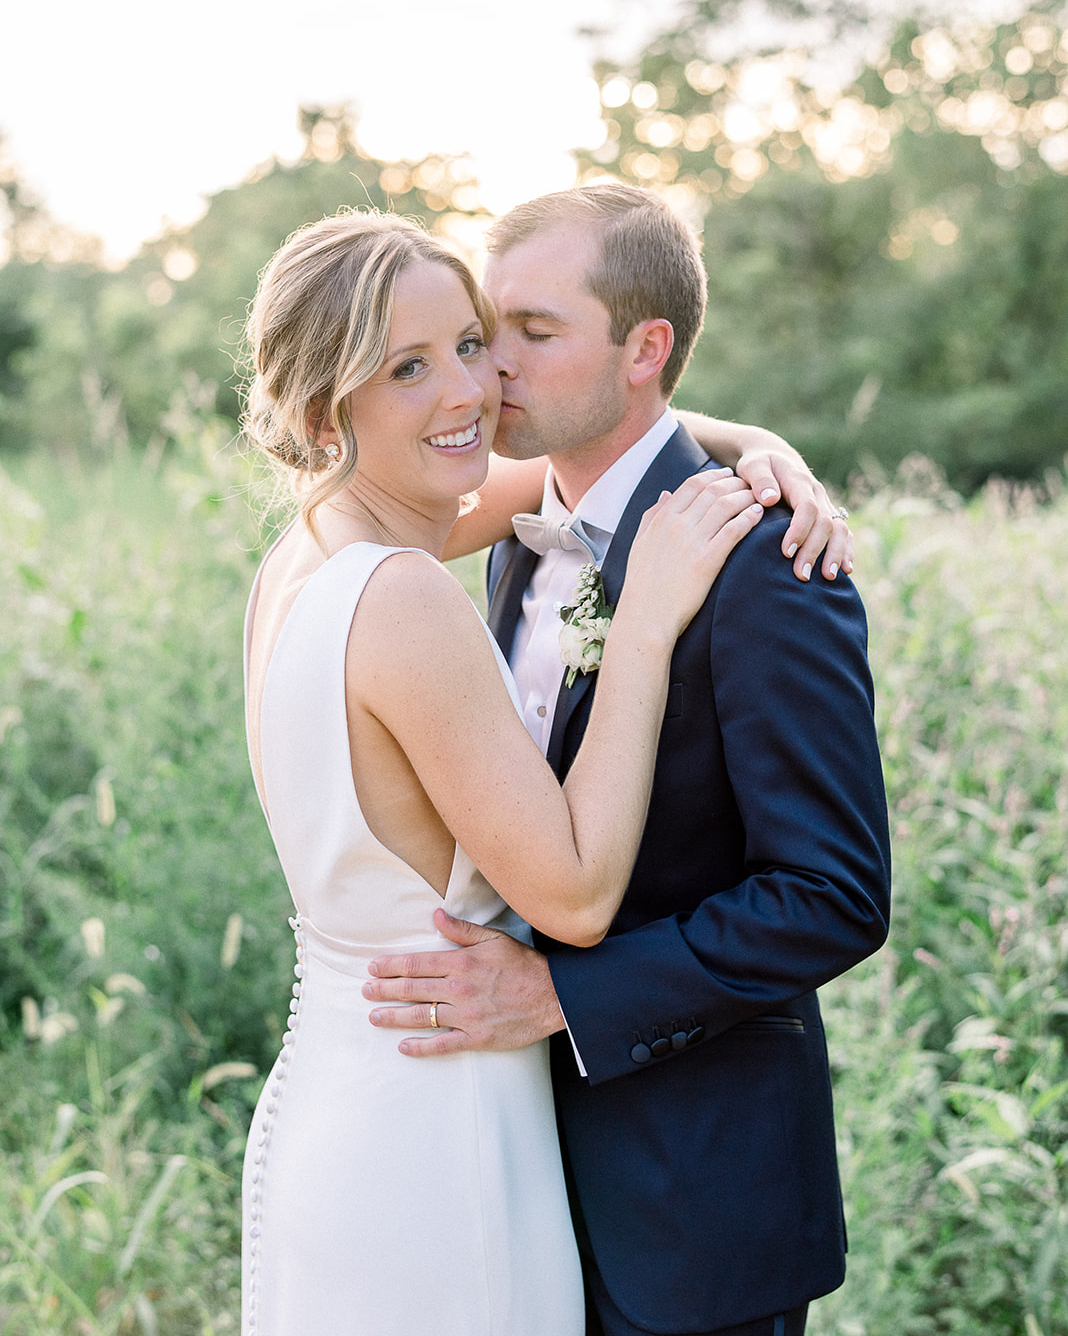 wedding dresses with buttons bride and groom hugging